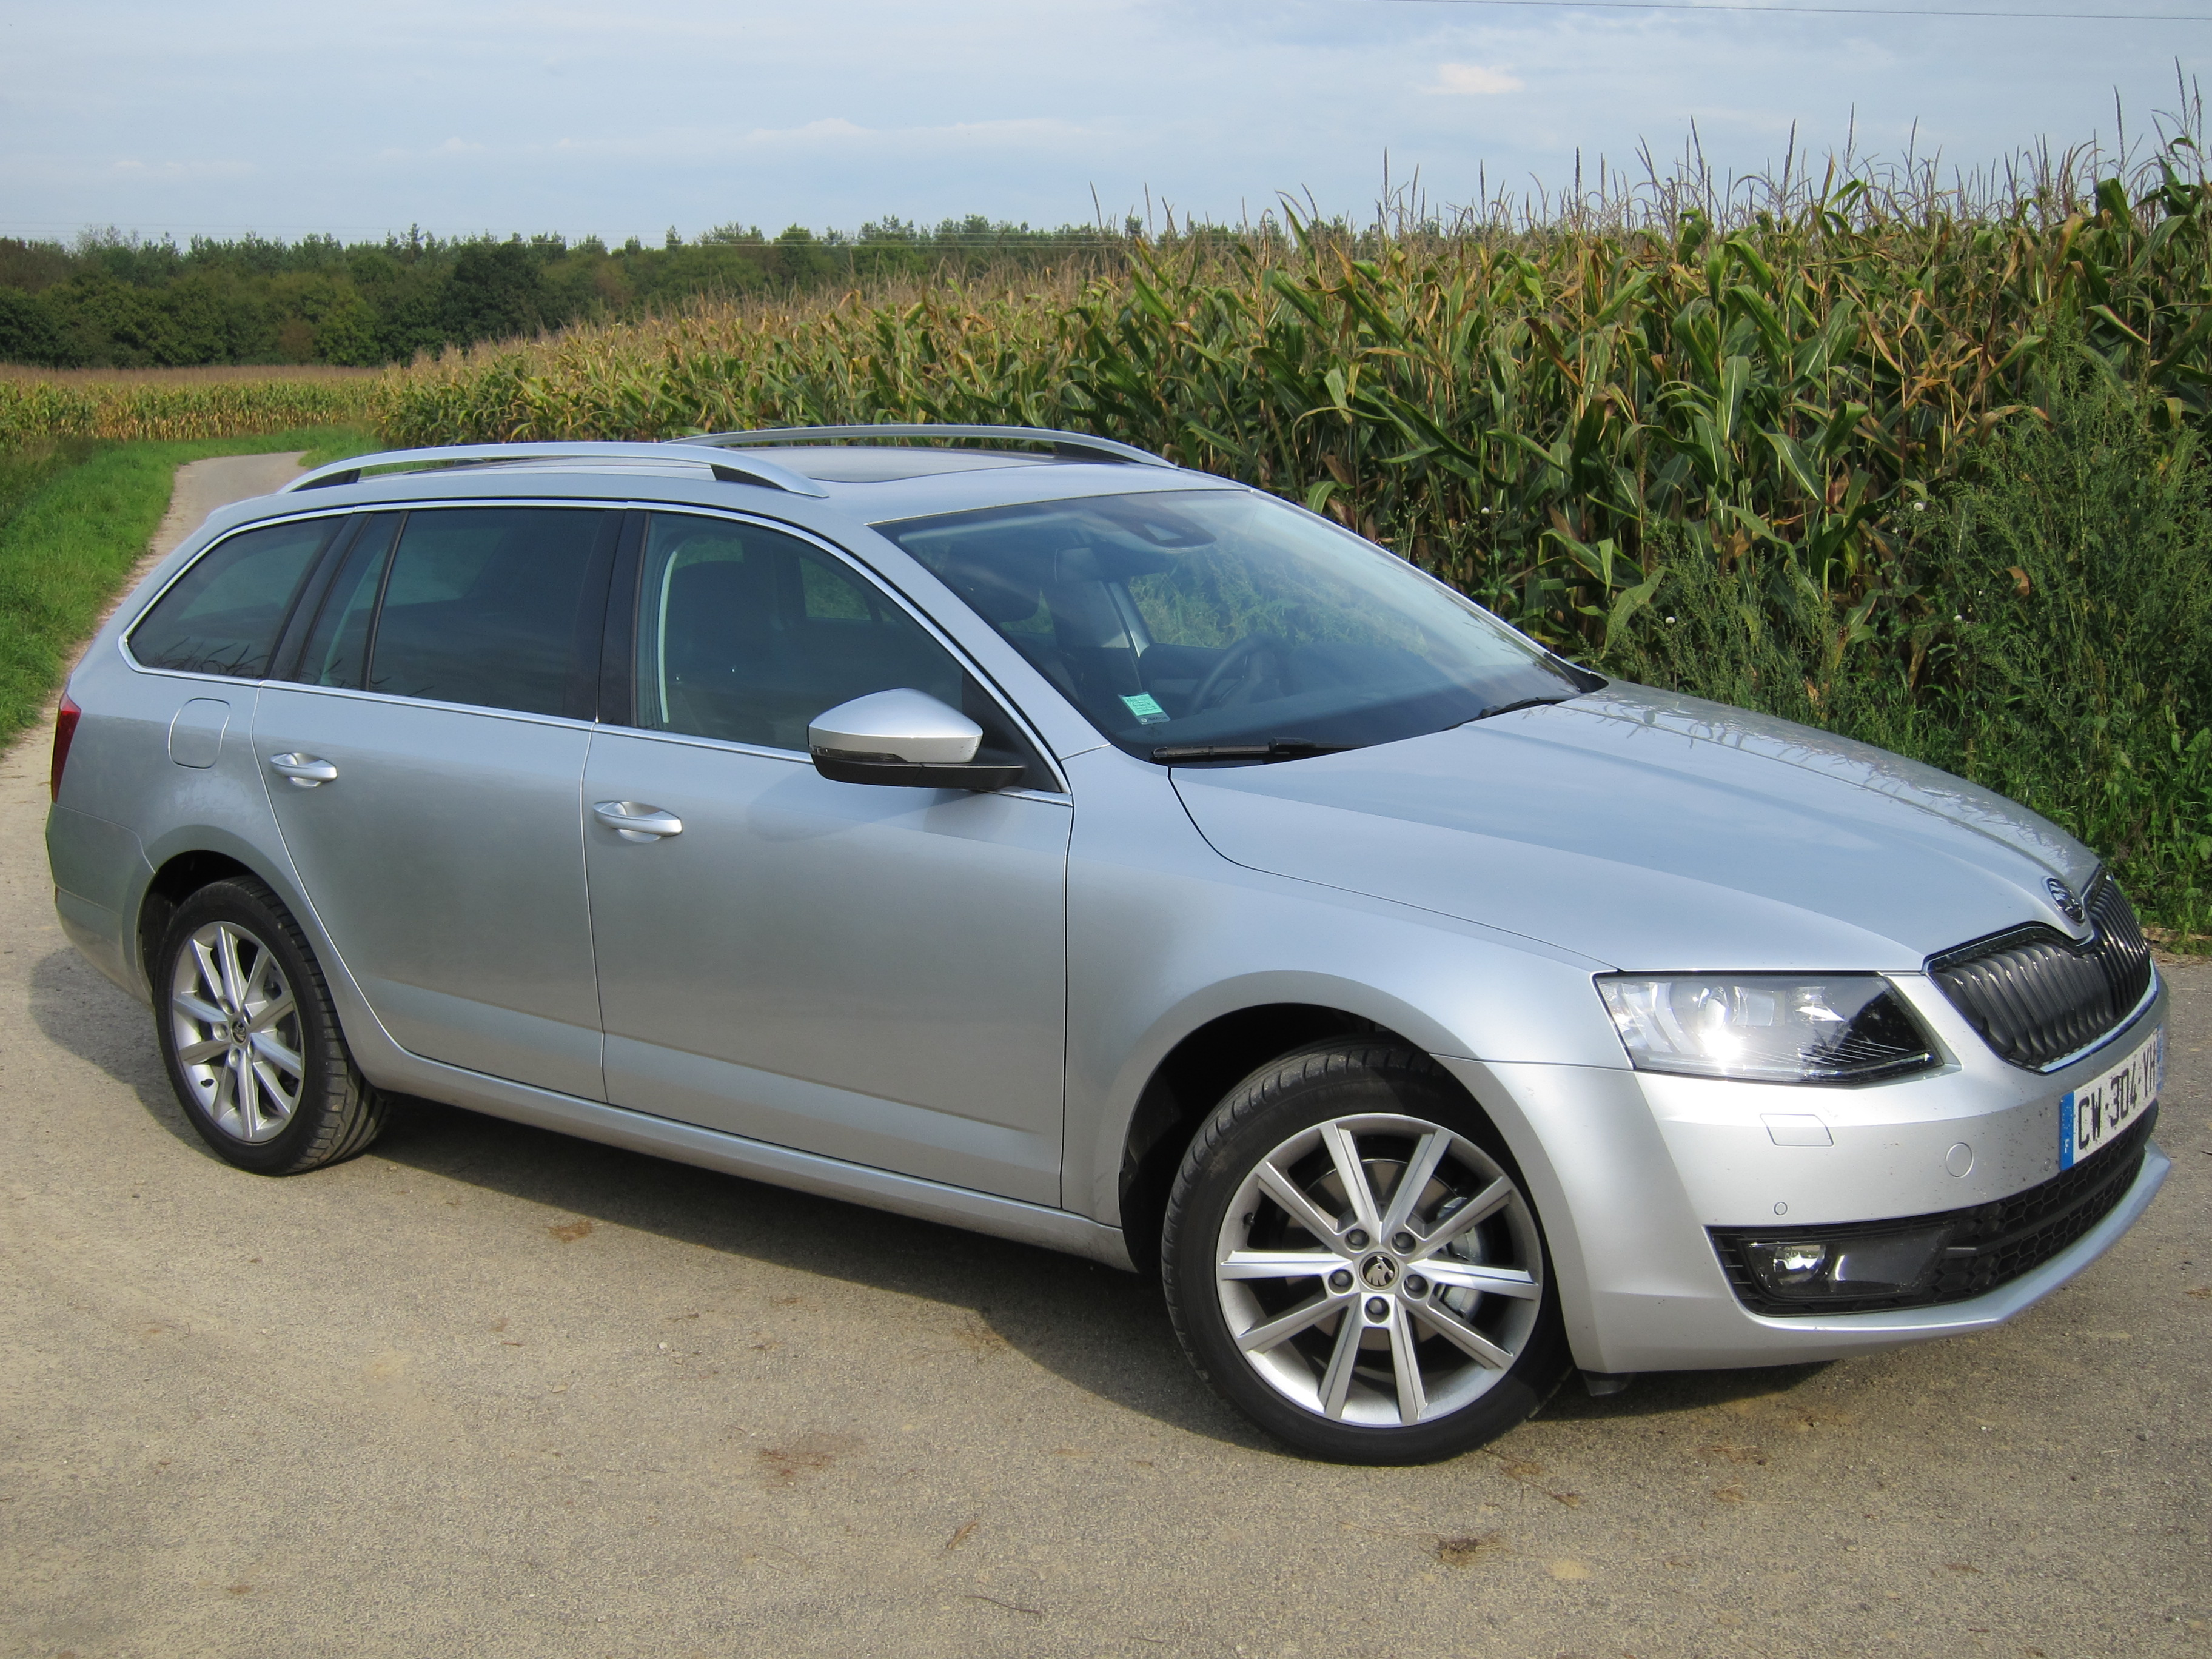 2015 skoda octavia tour iii pictures information and specs auto. Black Bedroom Furniture Sets. Home Design Ideas